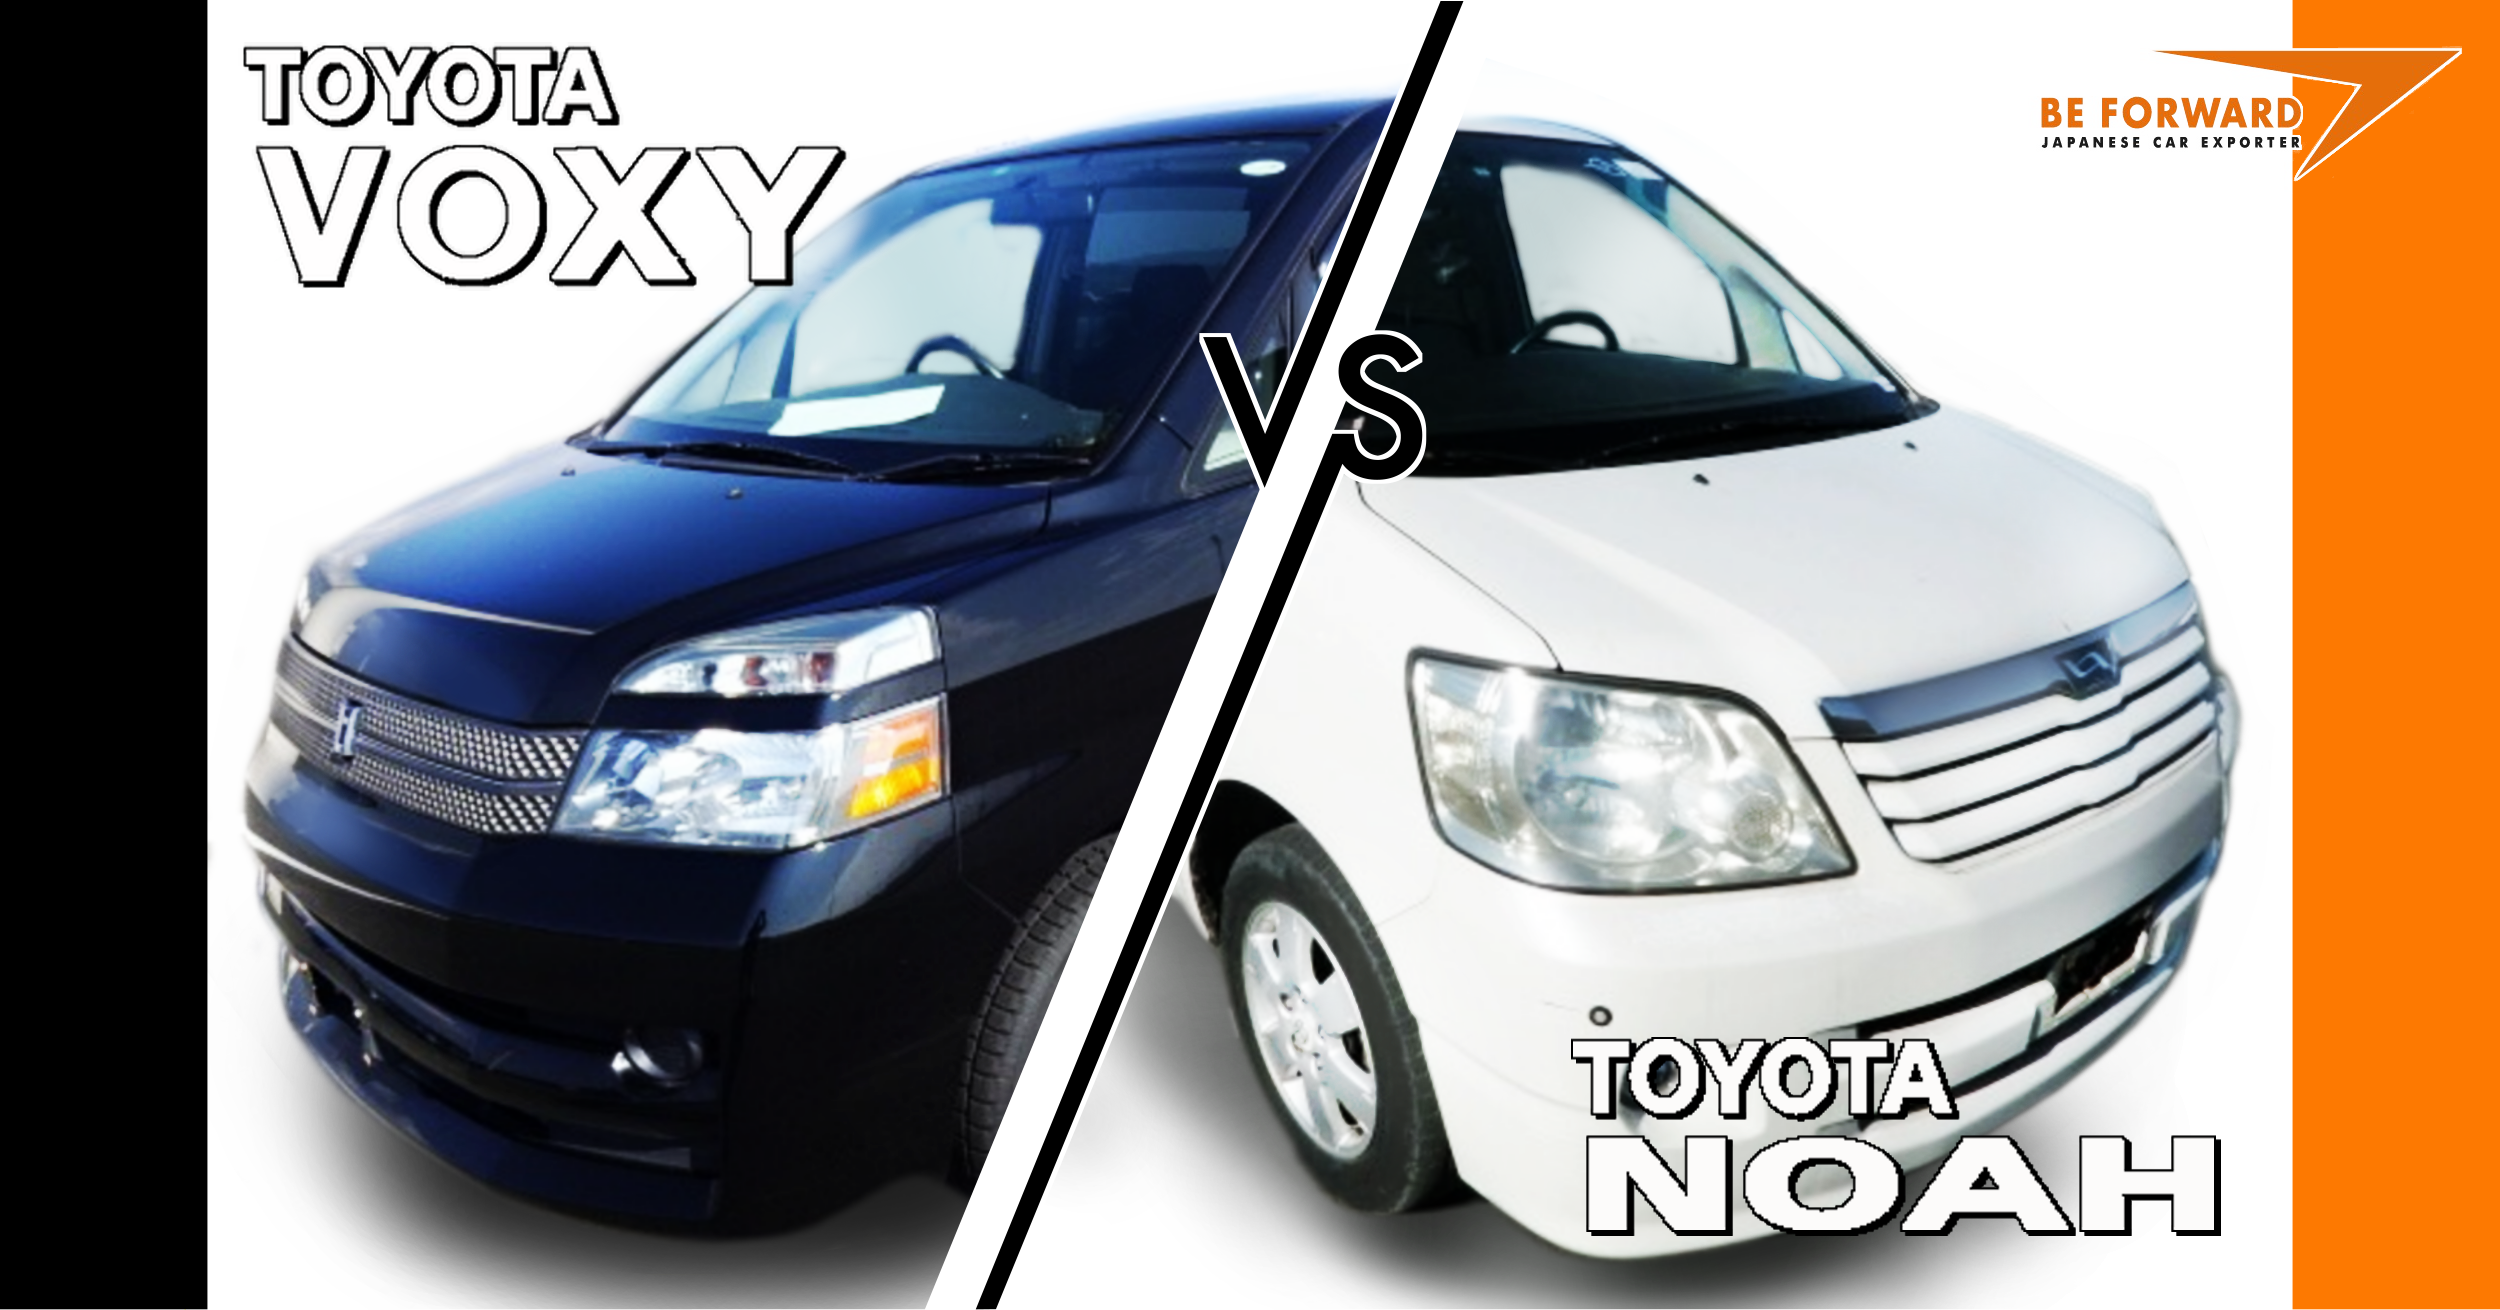 Toyota Voxy vs. Toyota Noah – Used Car Comparison